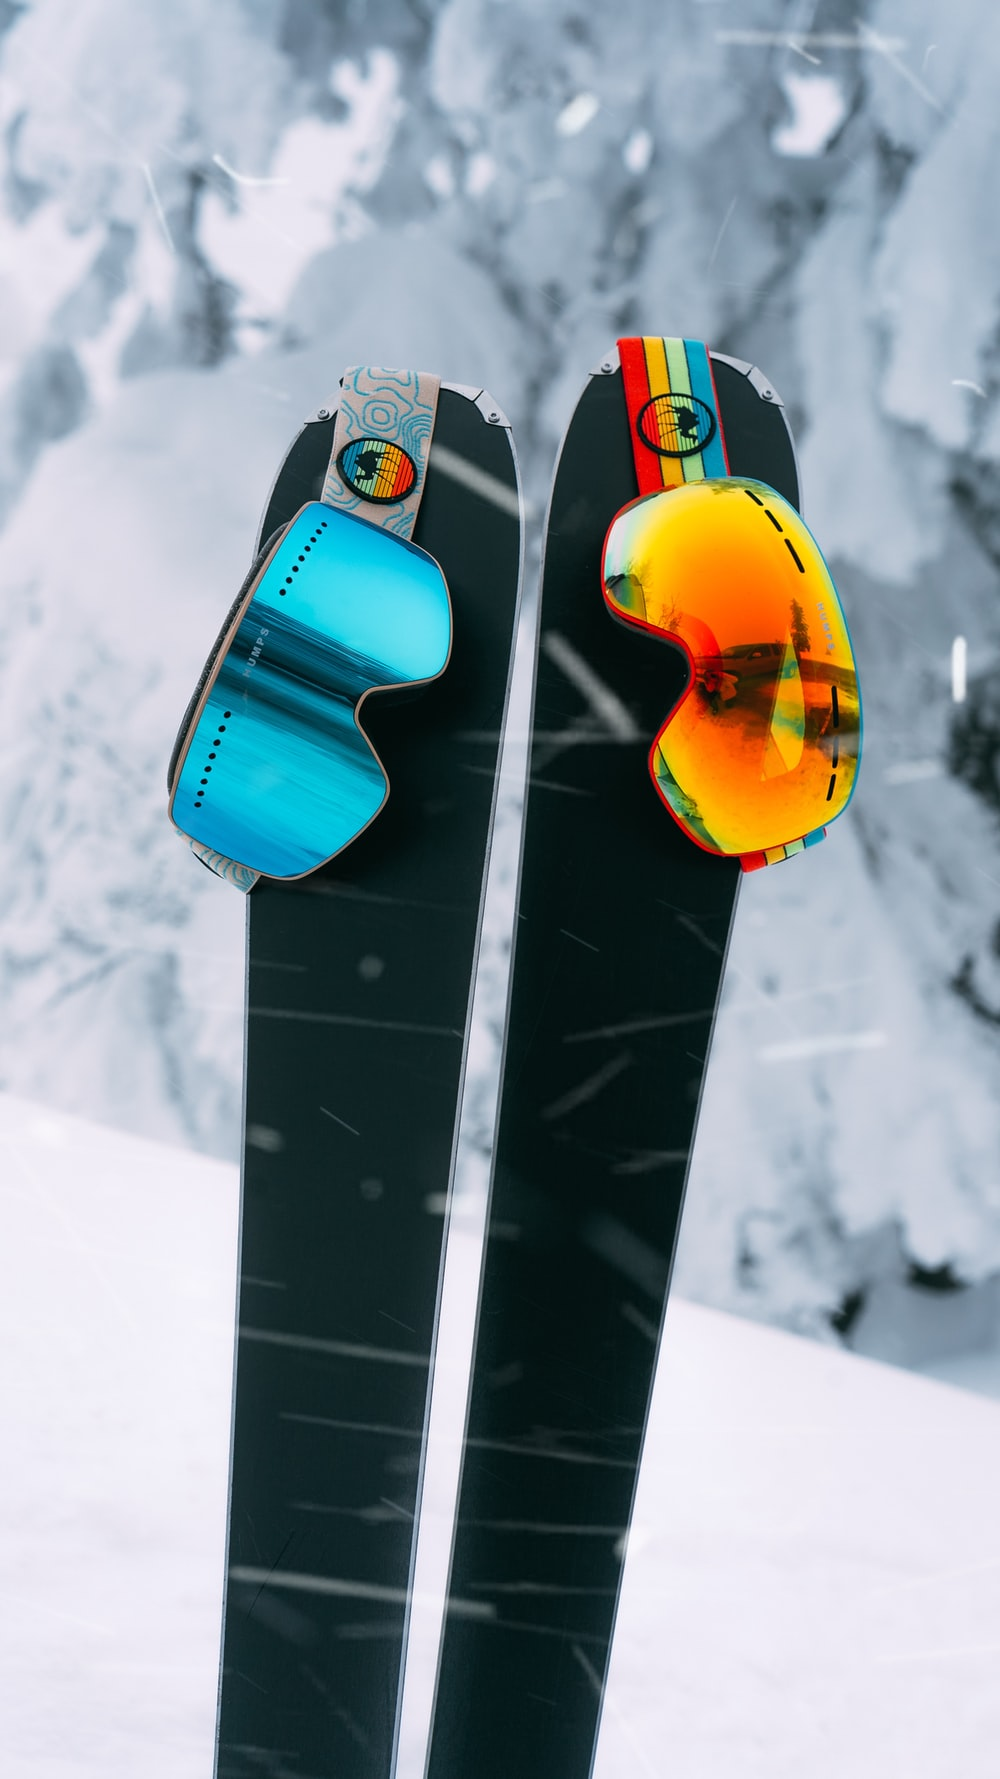 red and yellow snowboard on snow covered ground